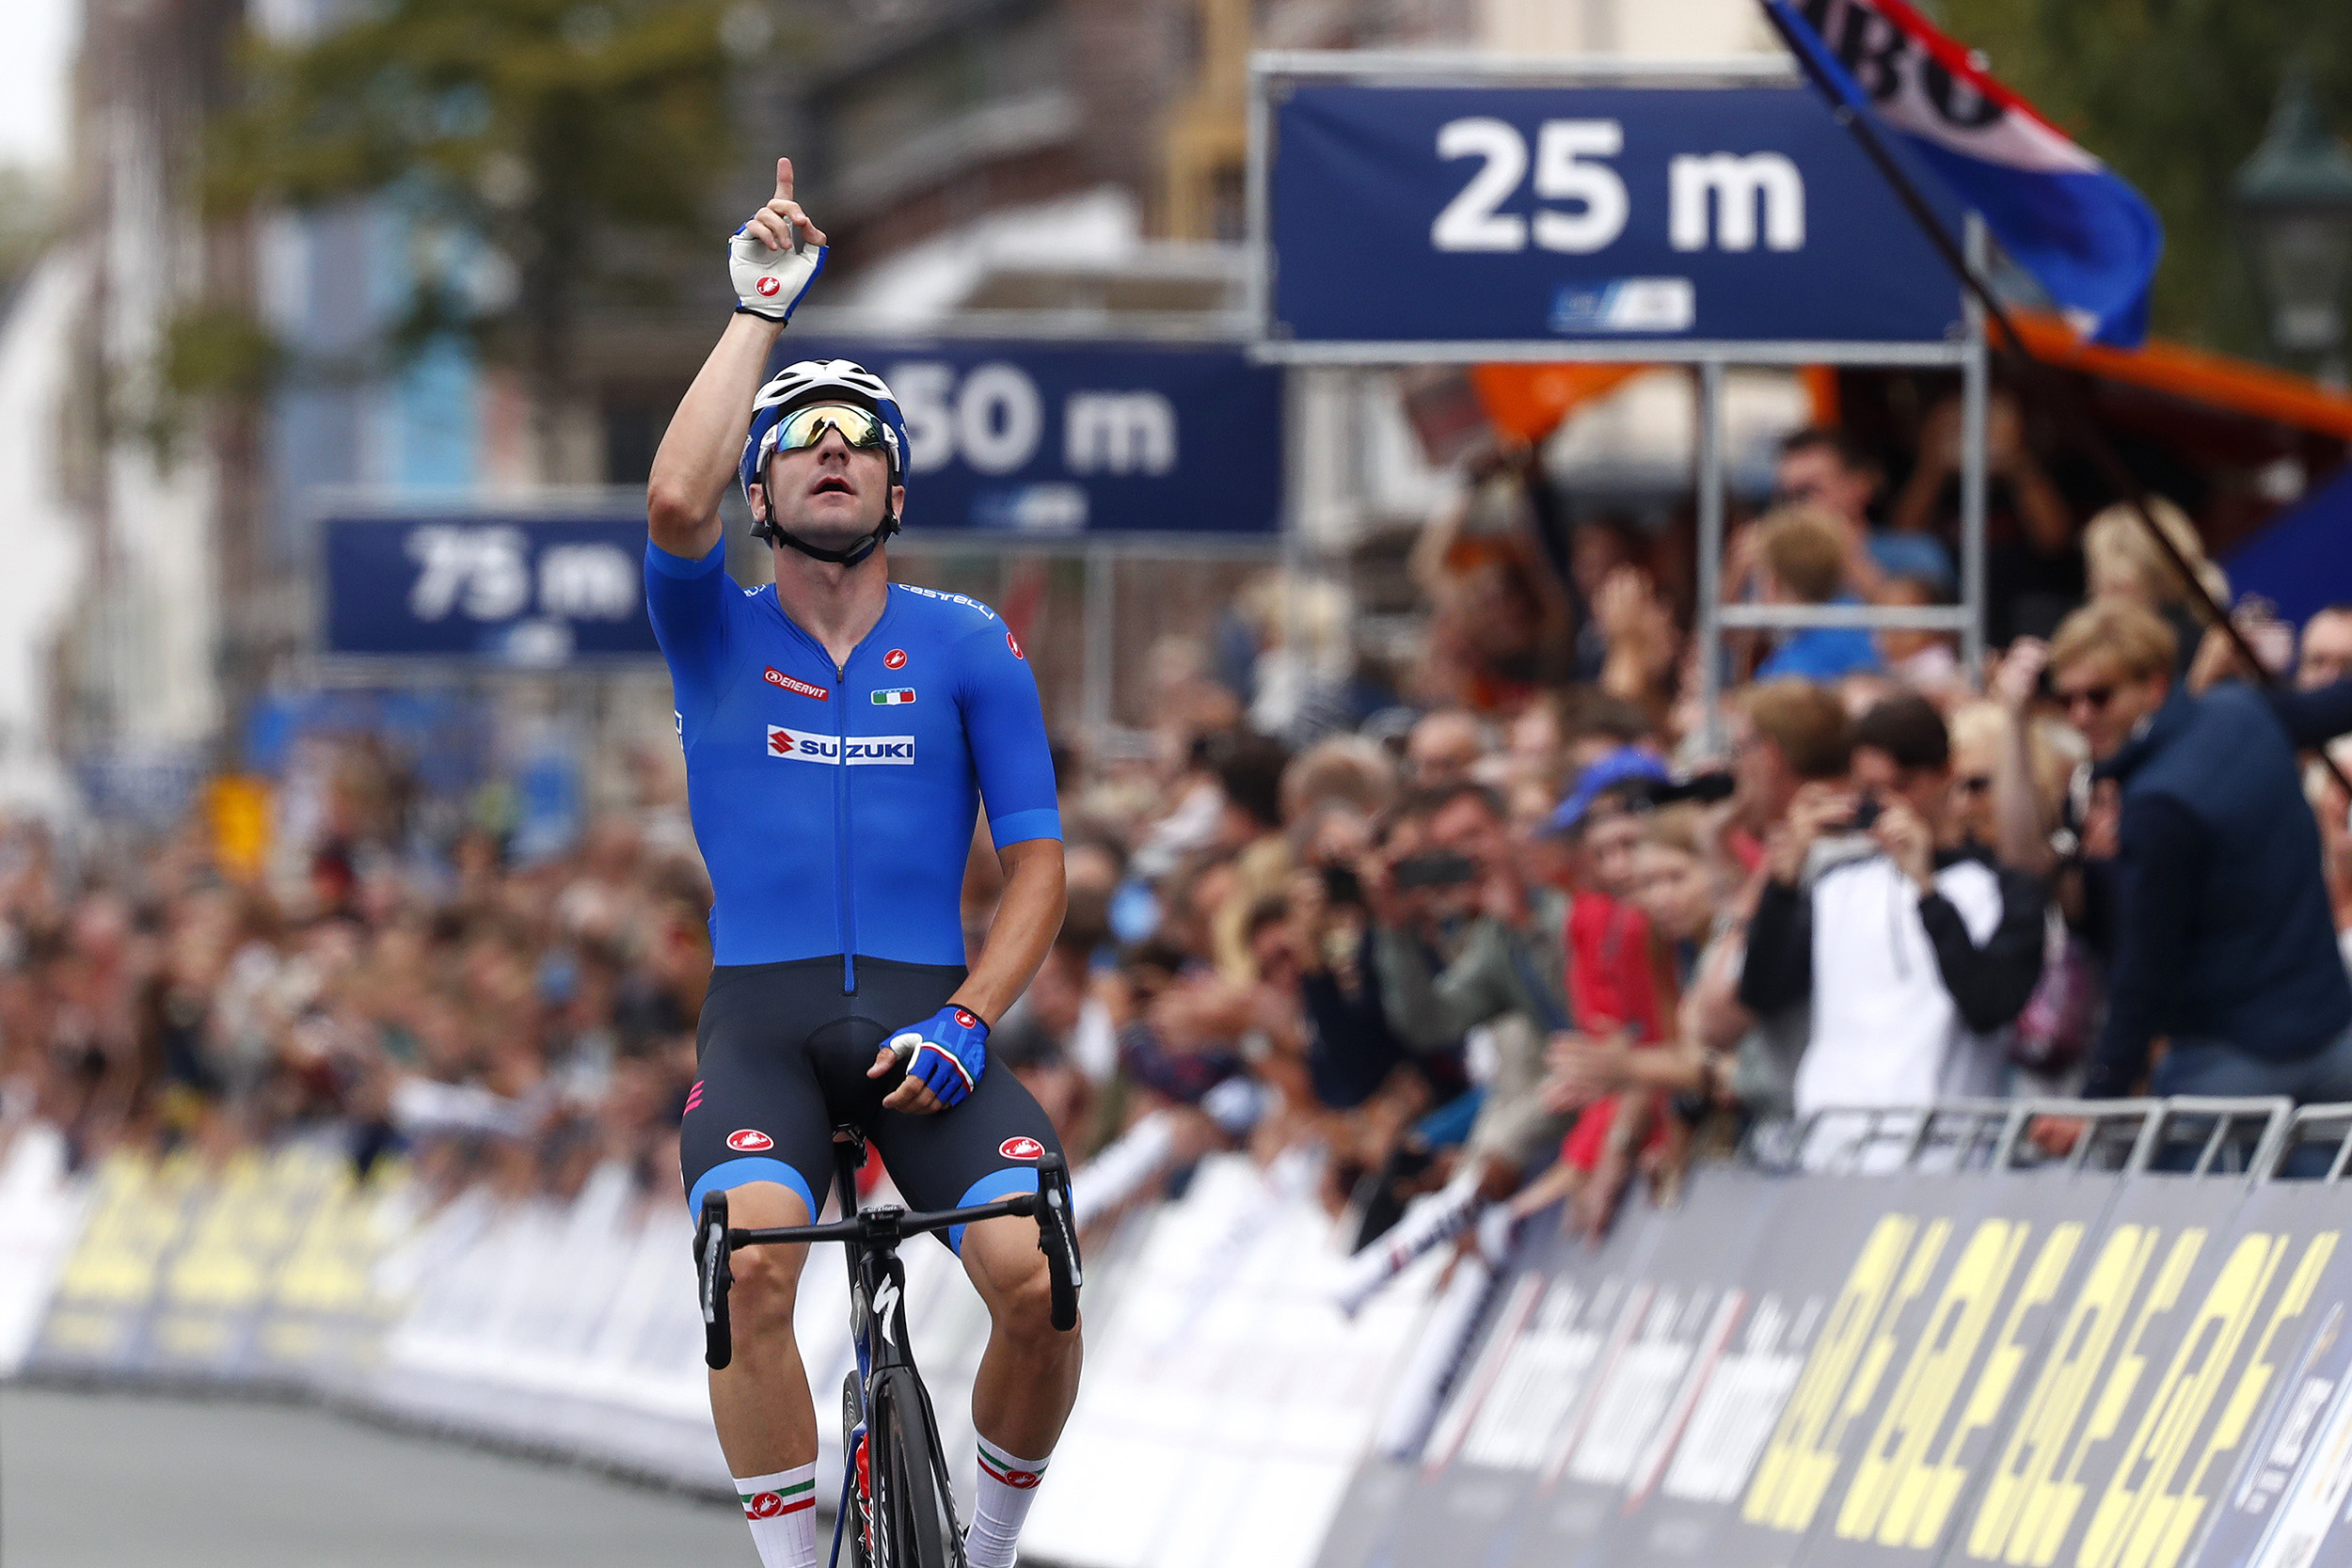 ALKMAAR, NETHERLANDS - AUGUST 11: Arrival / Elia Viviani of Italy / Celebration / during the 25th UEC Road European Championships 2019 - Elite Men's Road Race a 172,6km race from Alkmaar to Alkmaar / #EuroRoad19 / on August 11, 2019 in Alkmaar, Netherlands. (Photo by Bas Czerwinski/Getty Images)